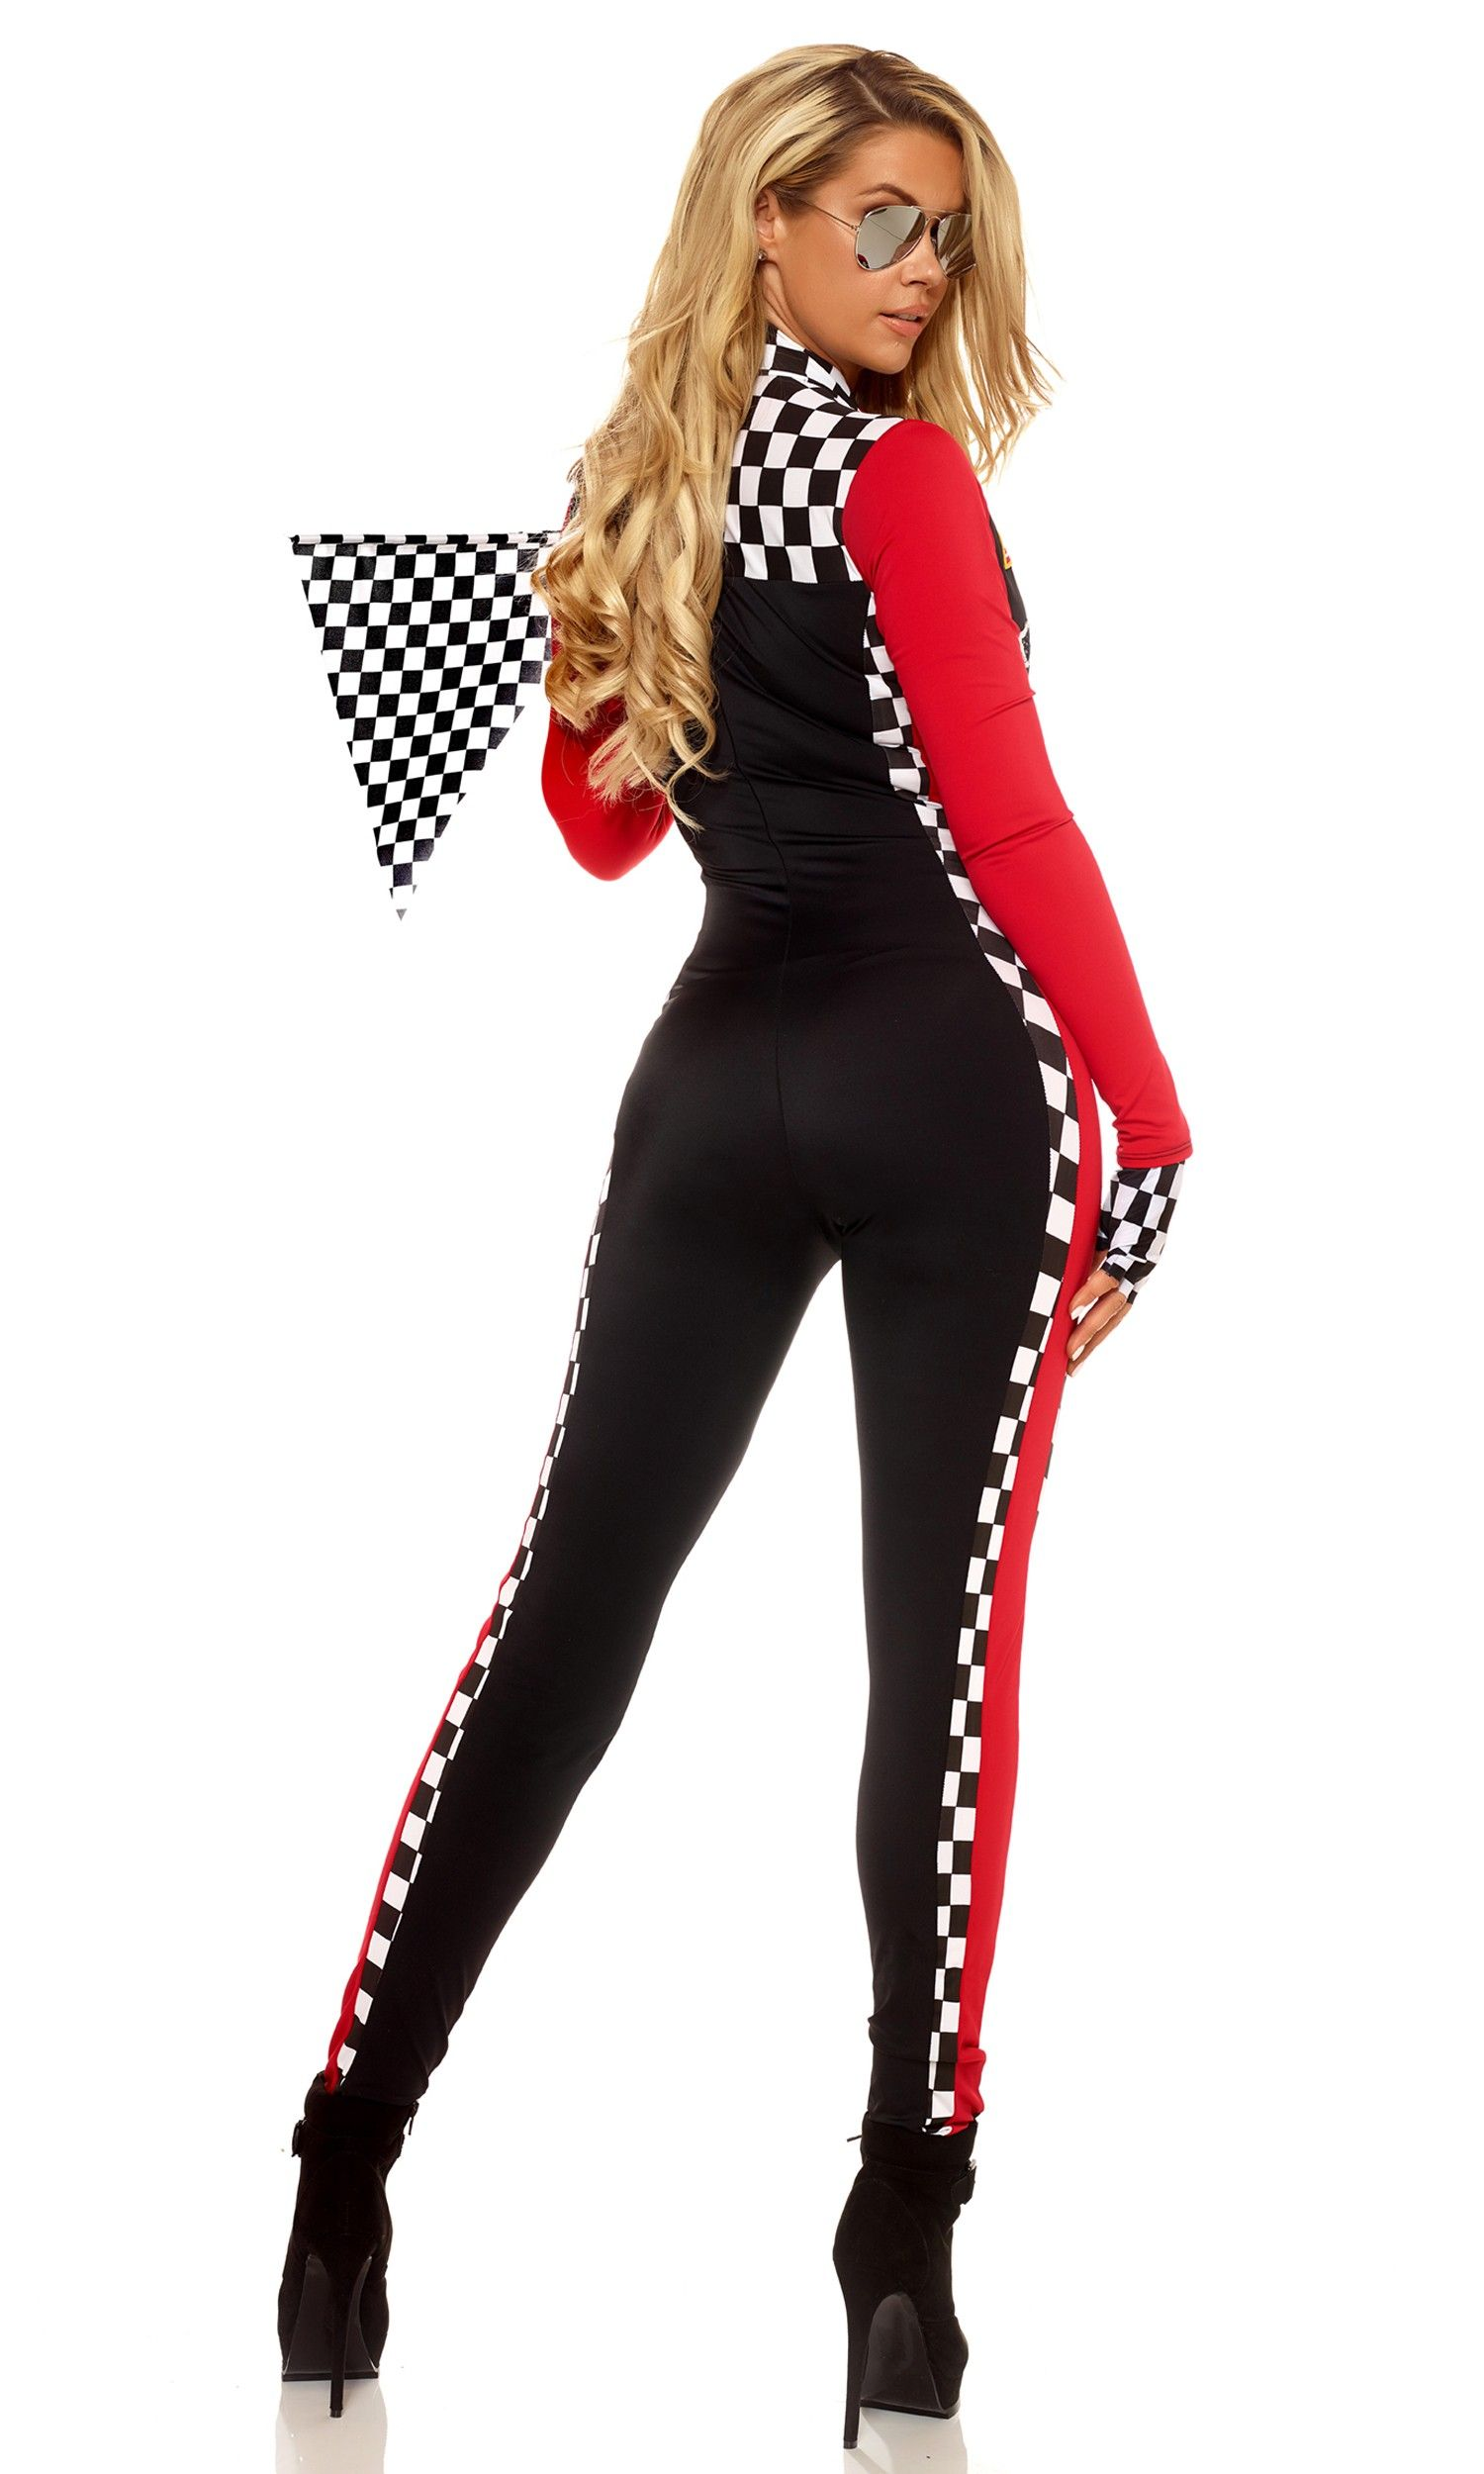 Womens Sexy Race Car Jumpsuit Costume Racer Girl Uniform Black Bodysuit With Gloves Tube Tops Sexy Costumes Back To Search Resultsnovelty & Special Use